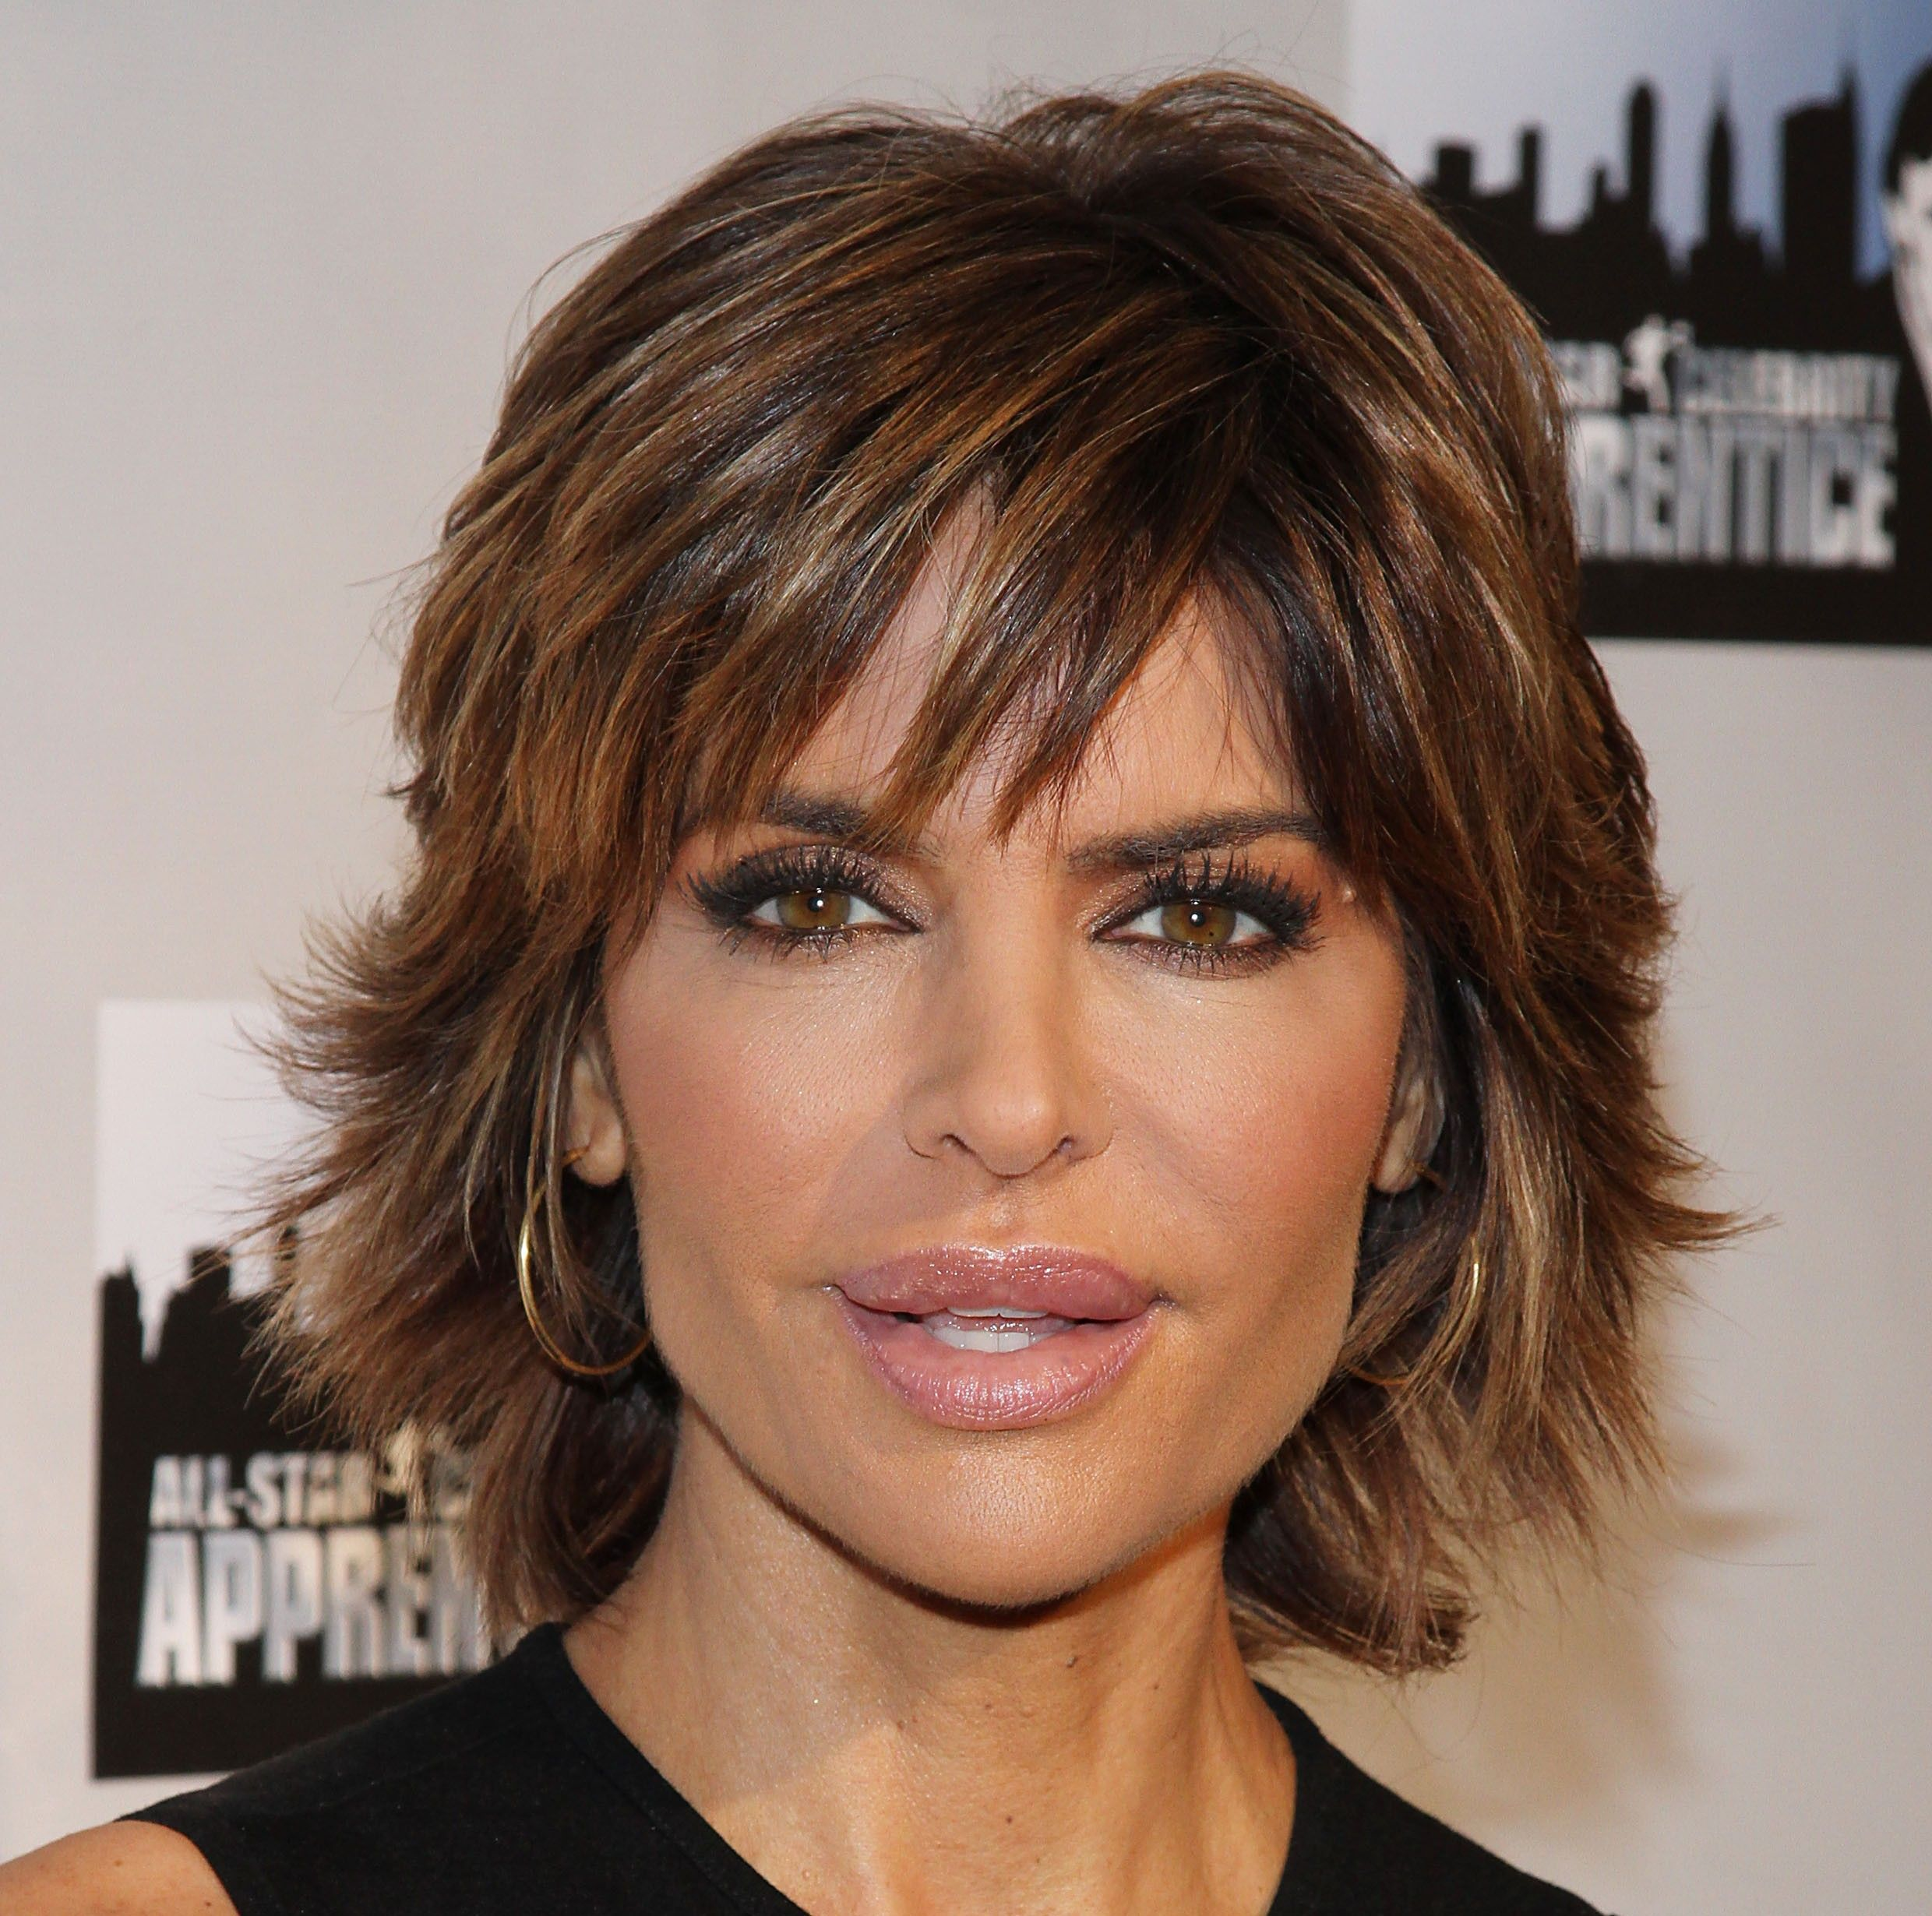 The Short Shag Haircut Is One Of The Best Hairstyles For Older Women